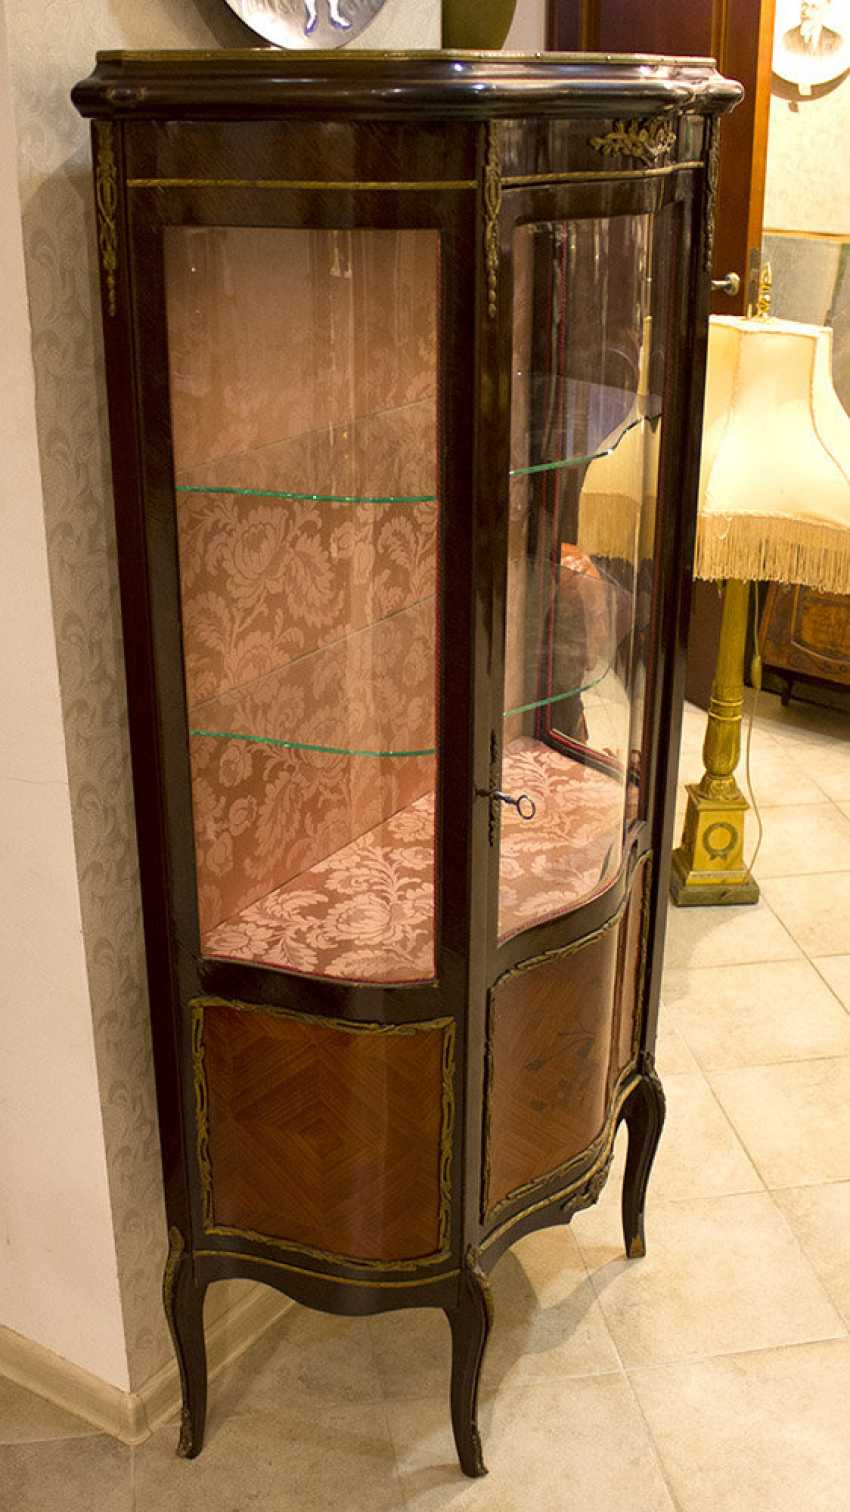 Antique showcase with a stacked figure and overlays - photo 2